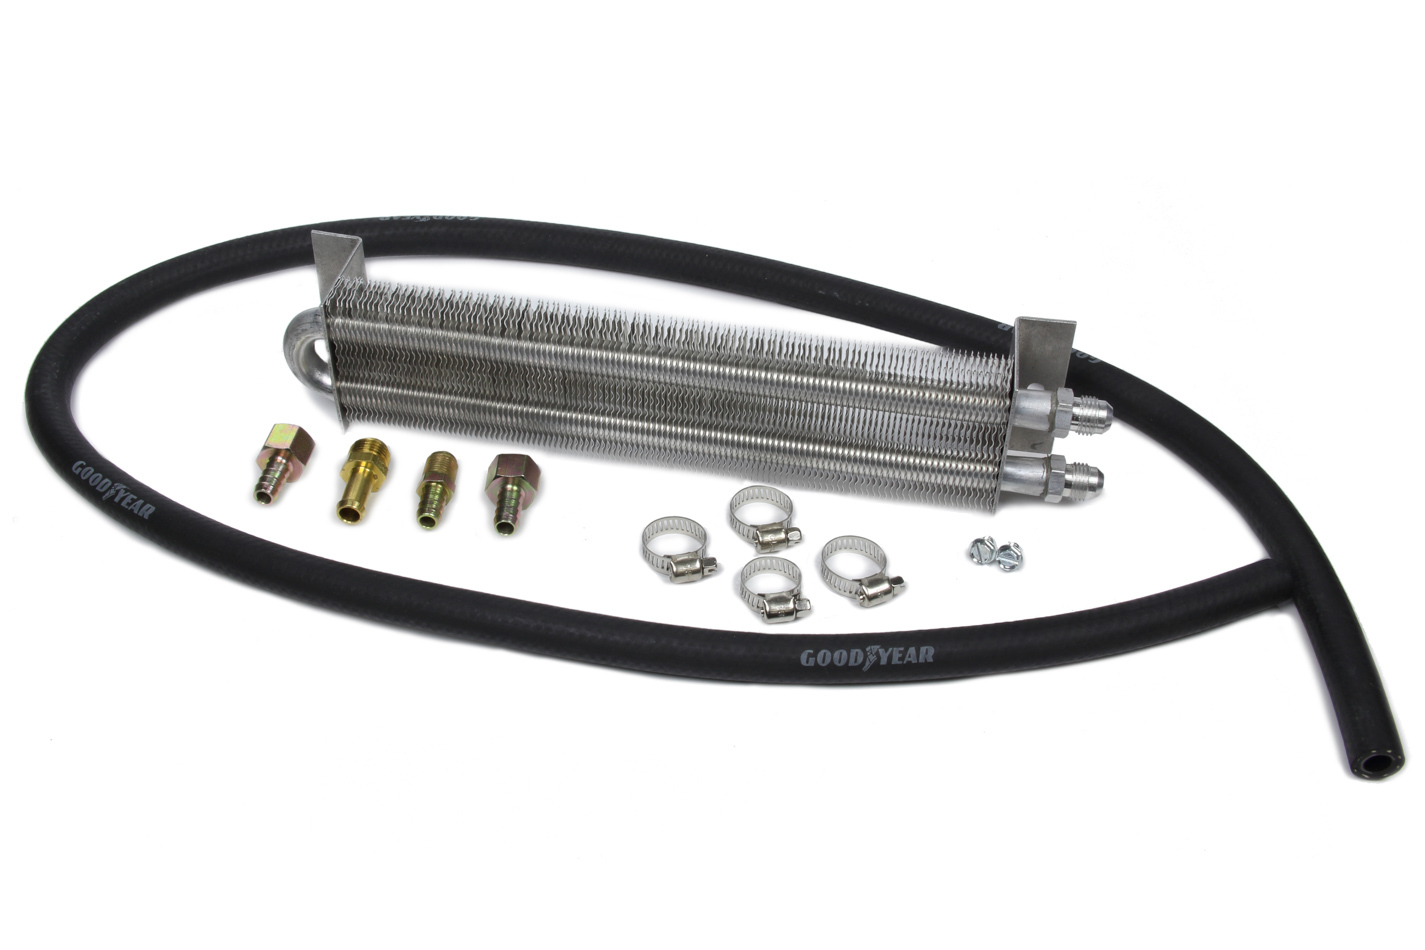 Perma Cool 997 Fluid Cooler, Two Pass System, 12 x 2-1/2 x 1-1/2 in, Tube Type, 3/8 in Hose Barb Inlet, 3/8 in Hose Barb Outlet, Brackets / Hardware / Hose, Aluminum, Natural, Kit